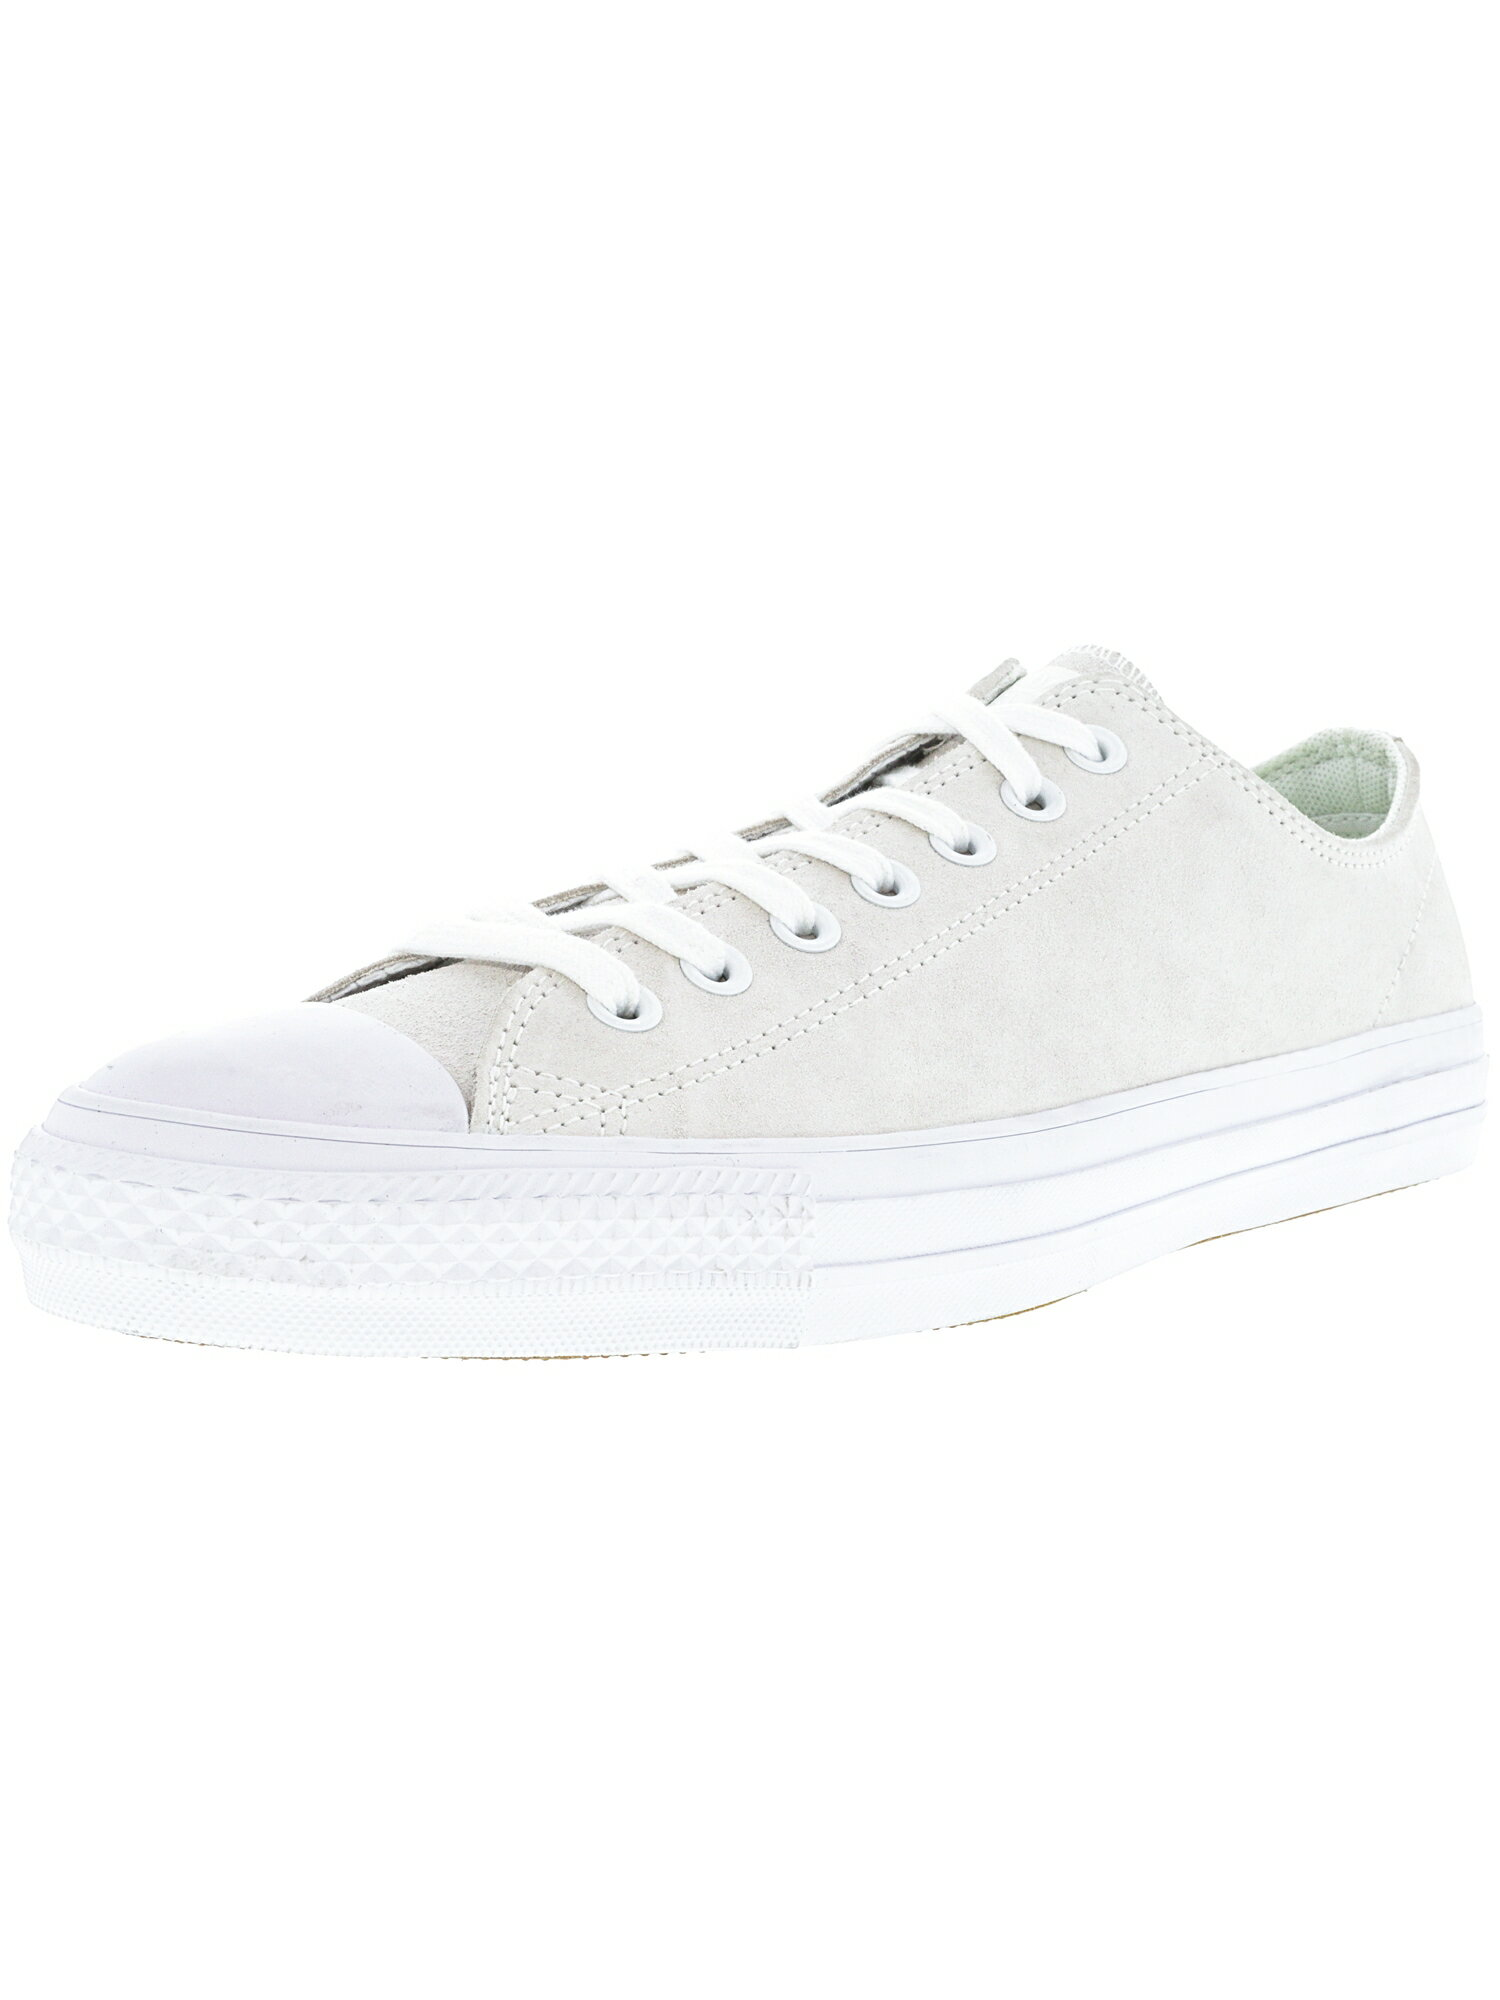 cfbcd74660fb Converse Chuck Taylor All Star Pro Ox White   Teal Ankle-High Leather  Fashion Sneaker